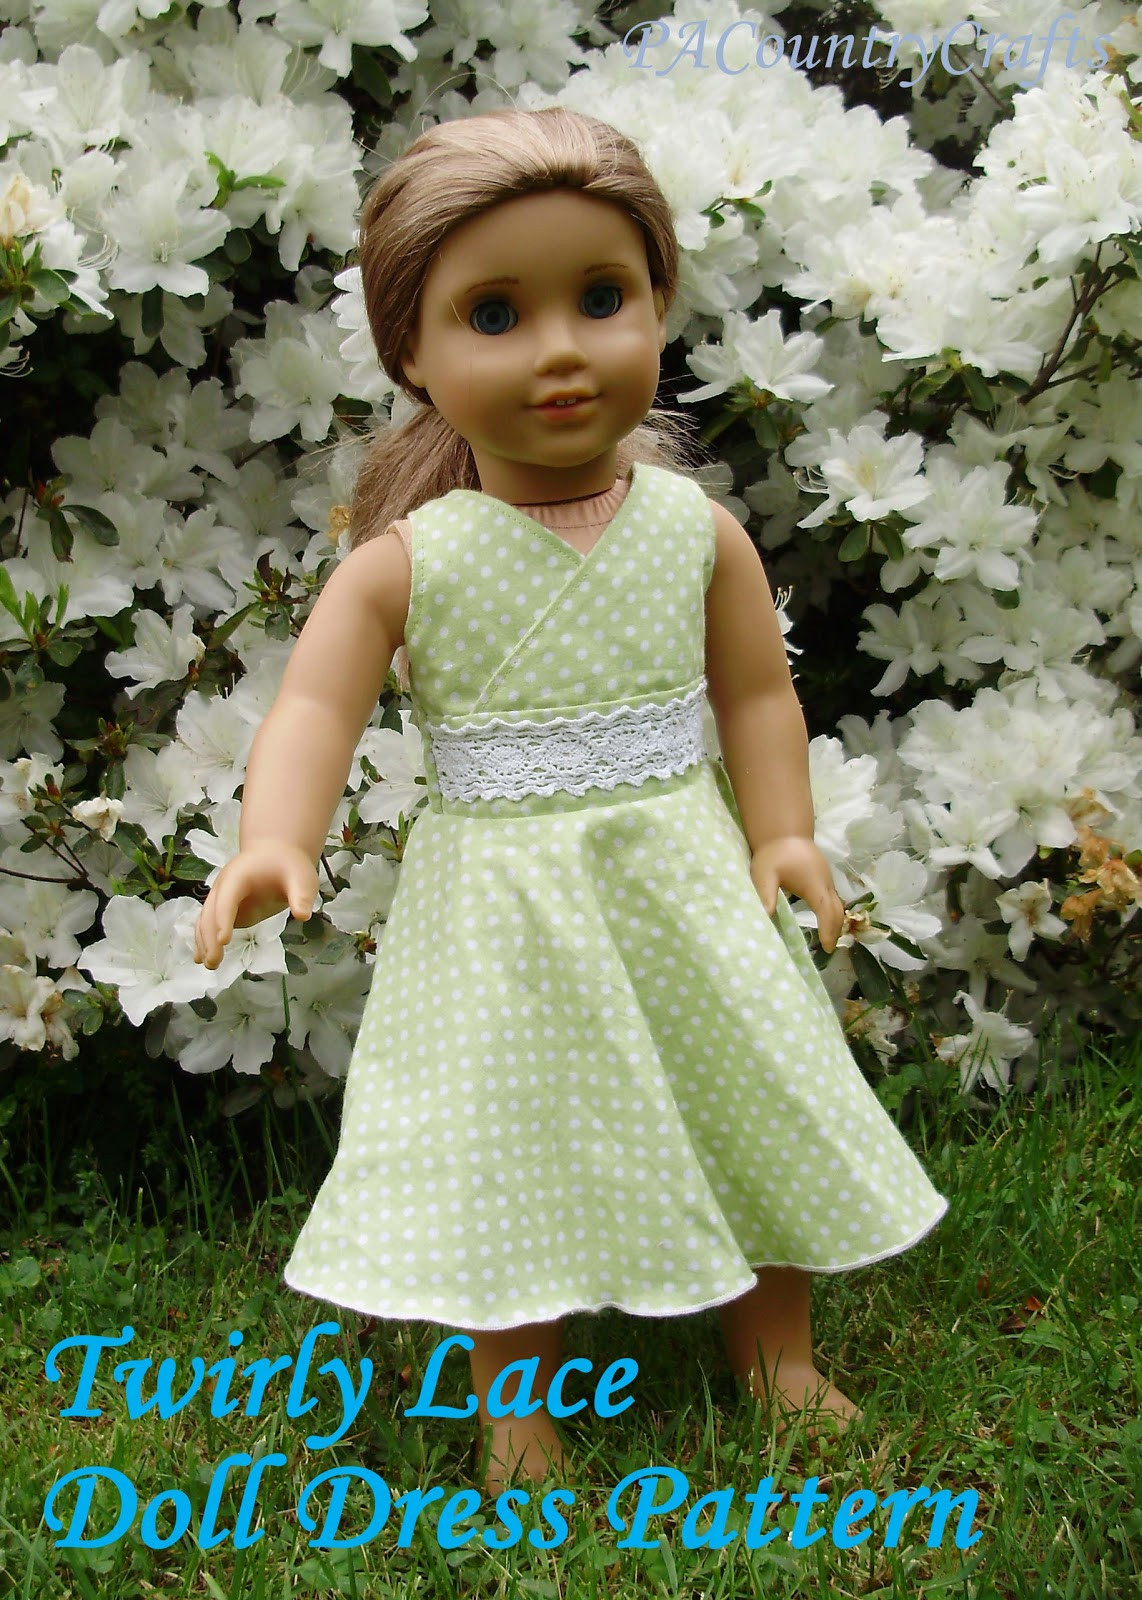 Doll Patterns Unique Twirly Lace Doll Dress Pattern Of Doll Patterns Best Of Rag Doll Patterns